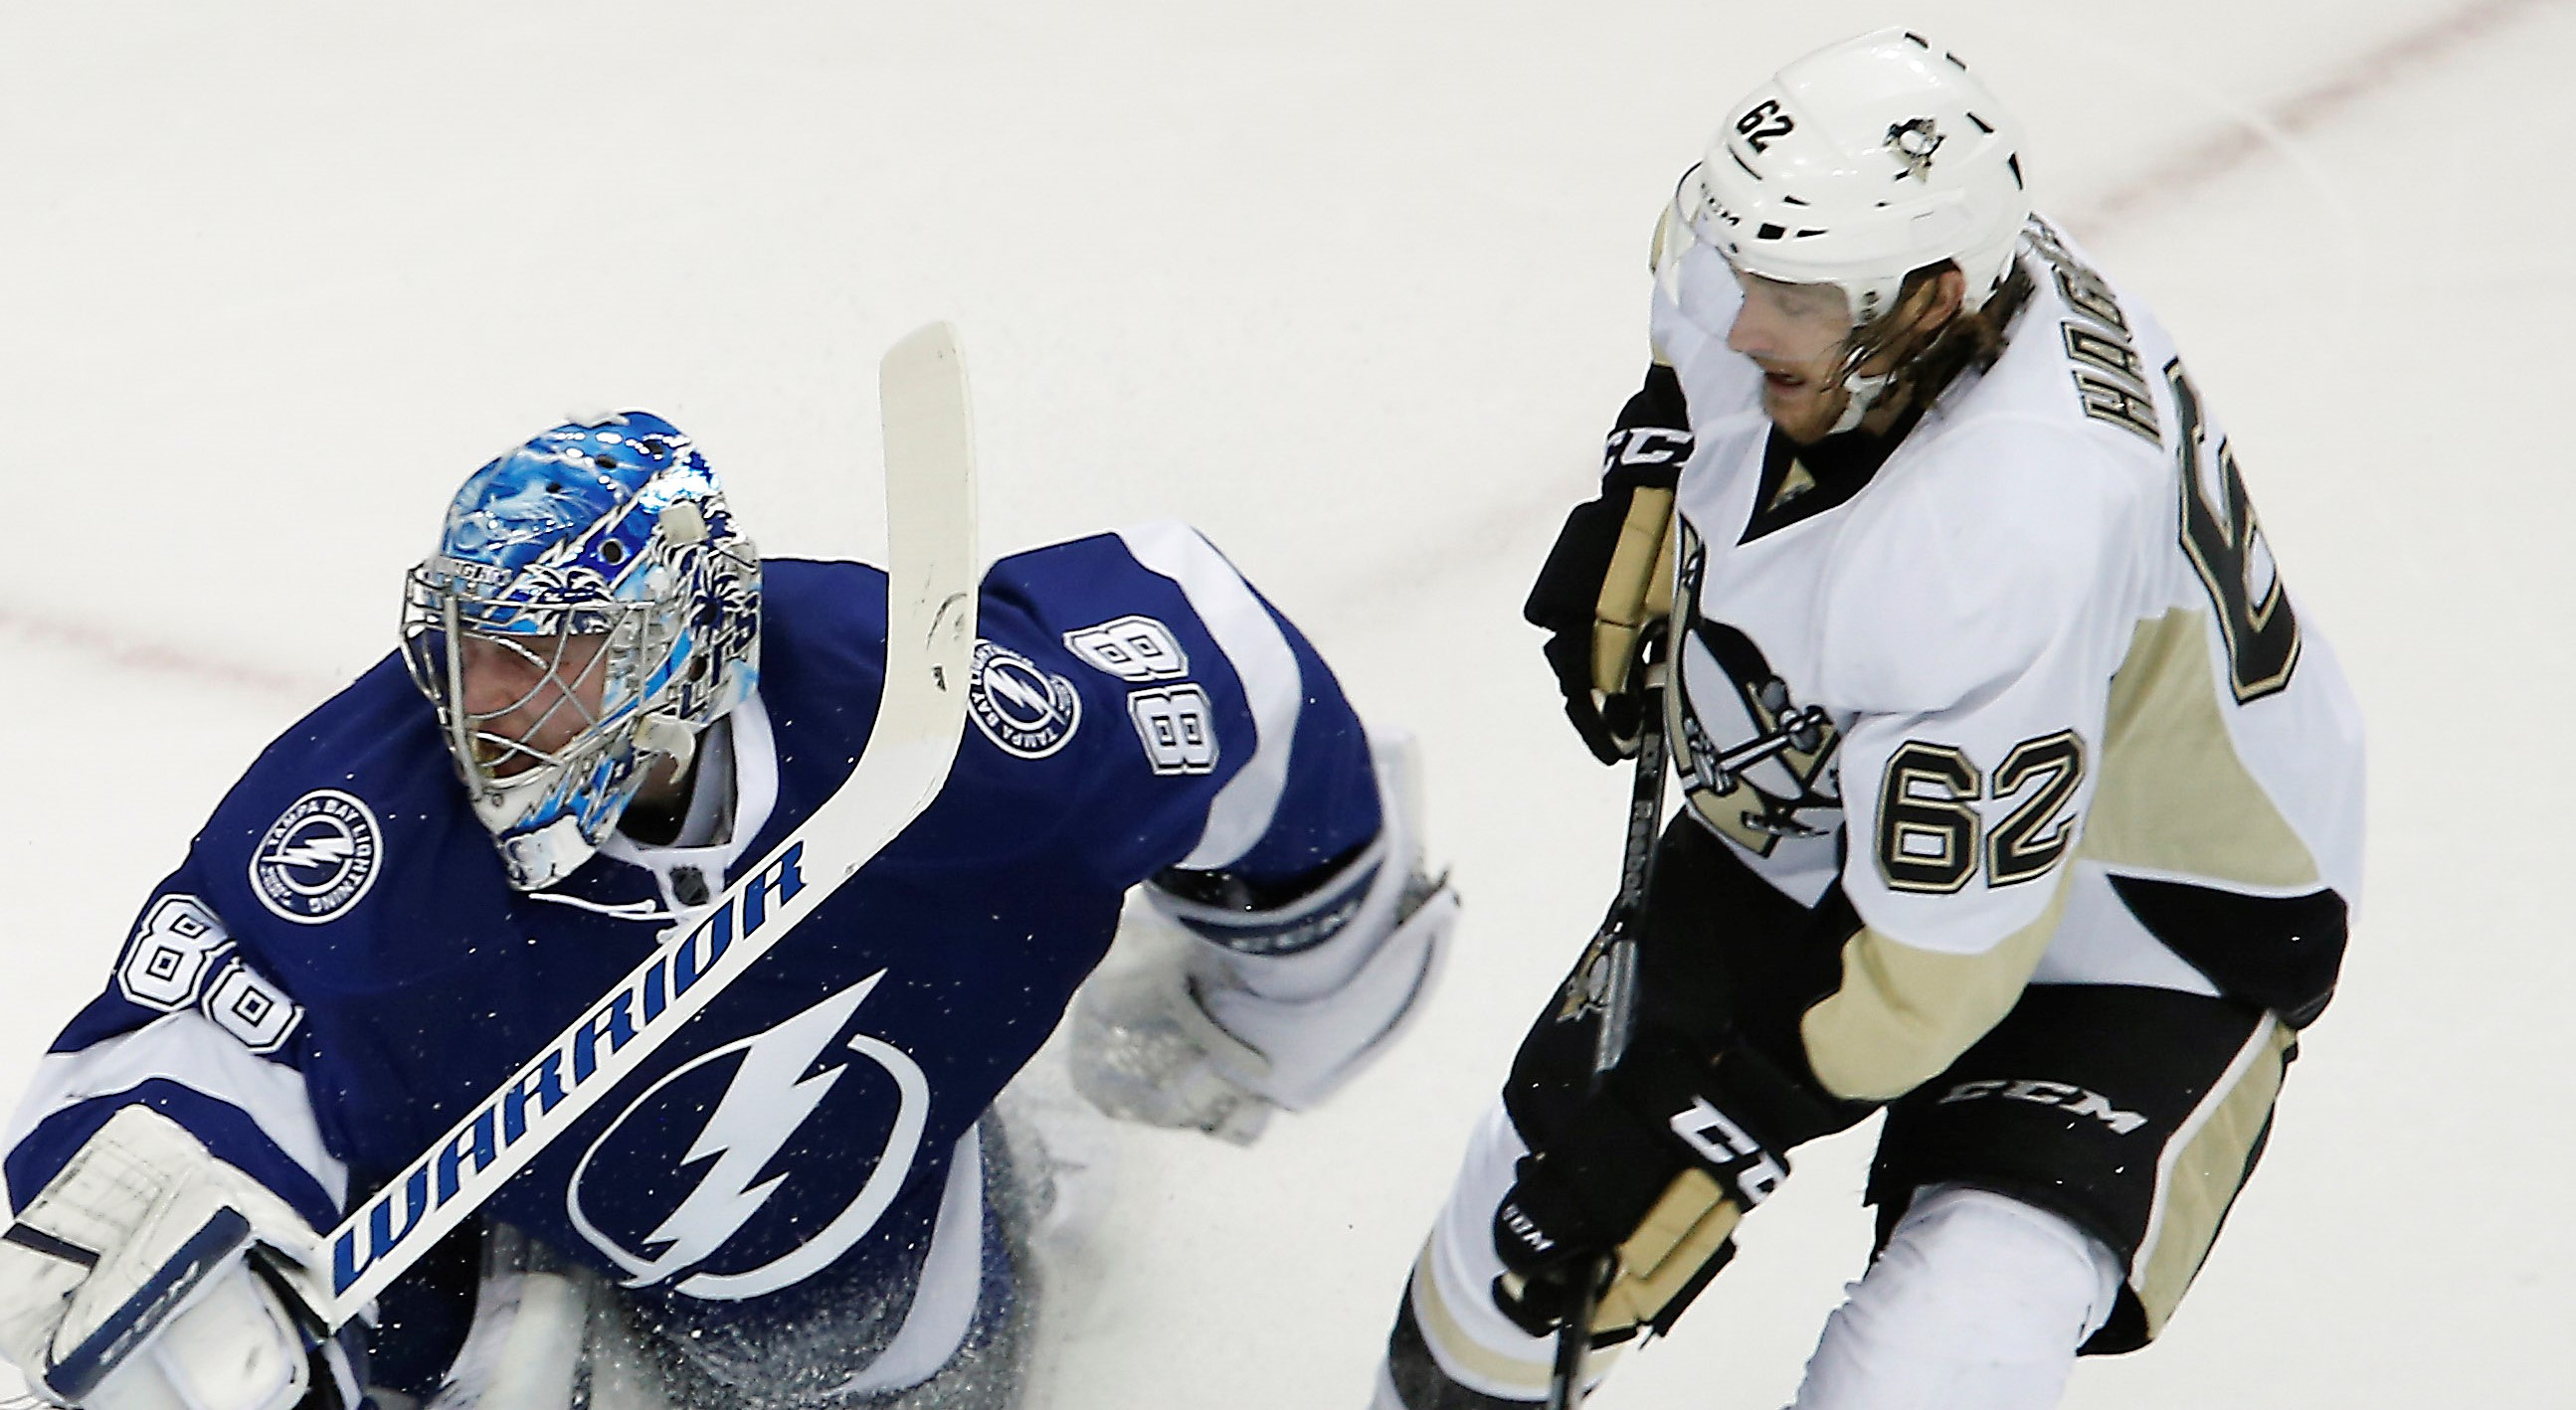 May 18, 2016; Tampa, FL, USA;  Pittsburgh Penguins left wing Carl Hagelin (62) scores a goal against Tampa Bay Lightning goalie Andrei Vasilevskiy (88) during the second period in game three of the Eastern Conference Final of the 2016 Stanley Cup Playoffs at Amalie Arena. Mandatory Credit: Reinhold Matay-USA TODAY Sports